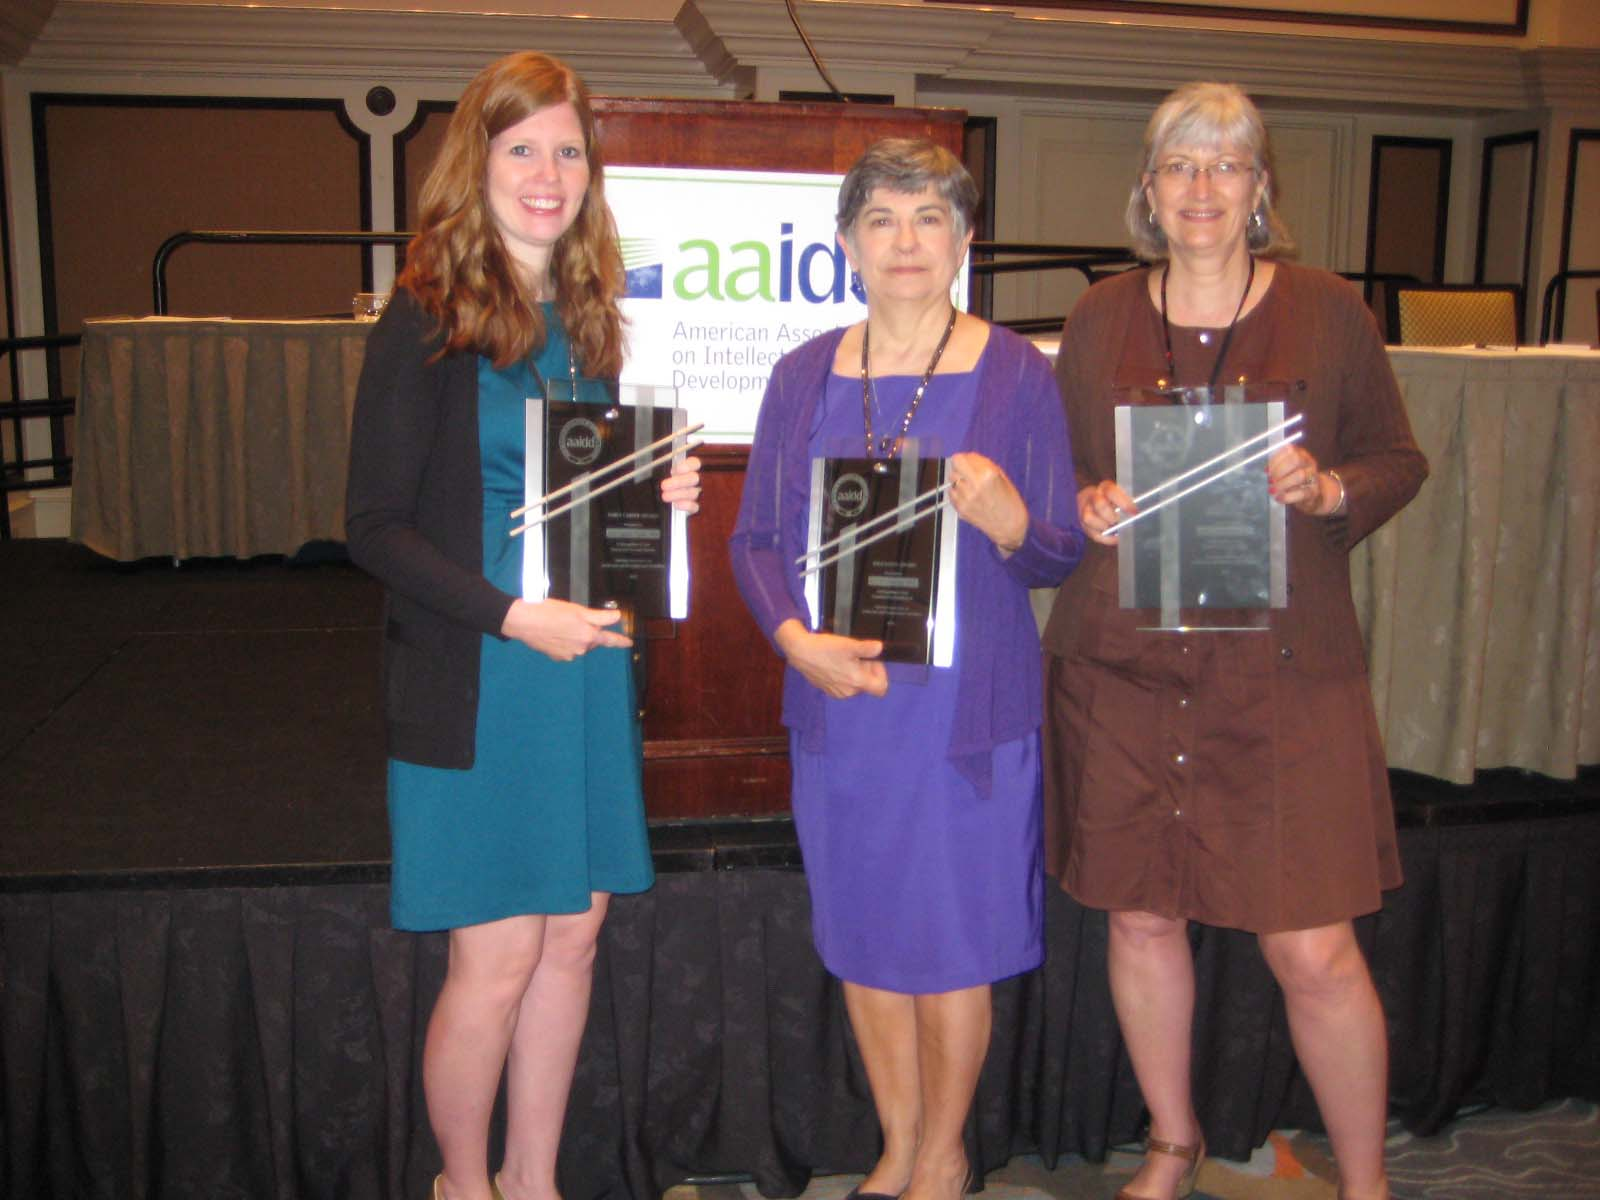 VKC faculty, staff earn awards at AAIDD Meeting in Orlando